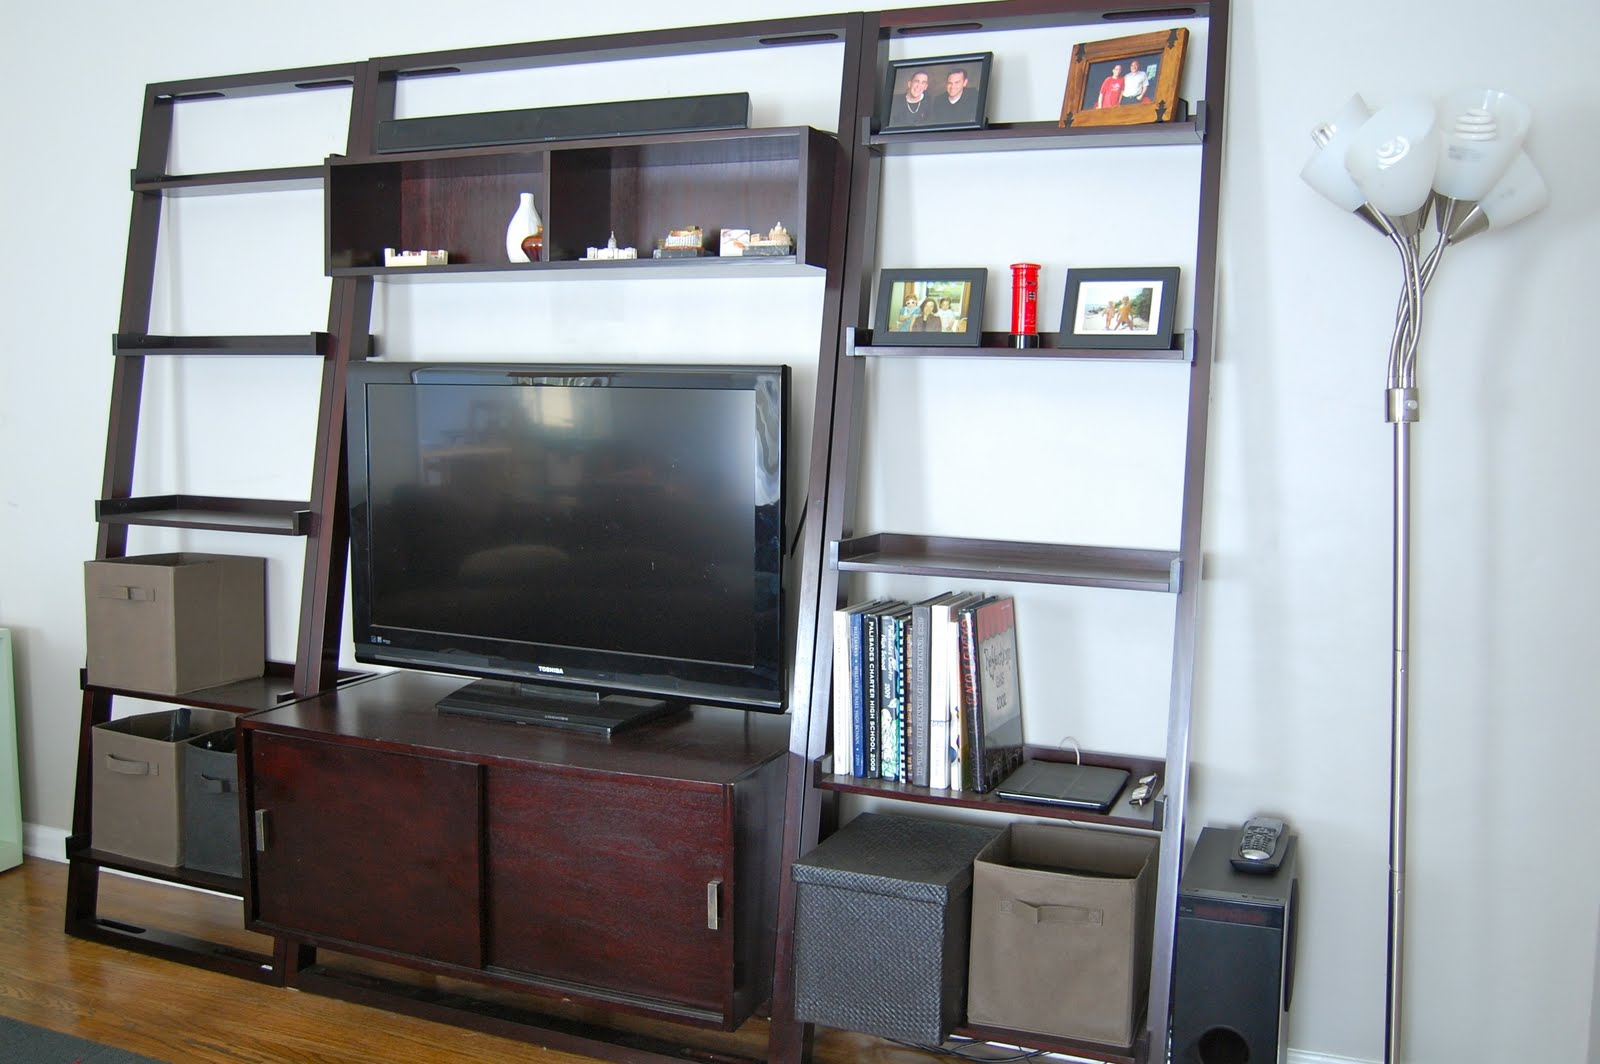 reno doozins living room update and more craigslist shopping